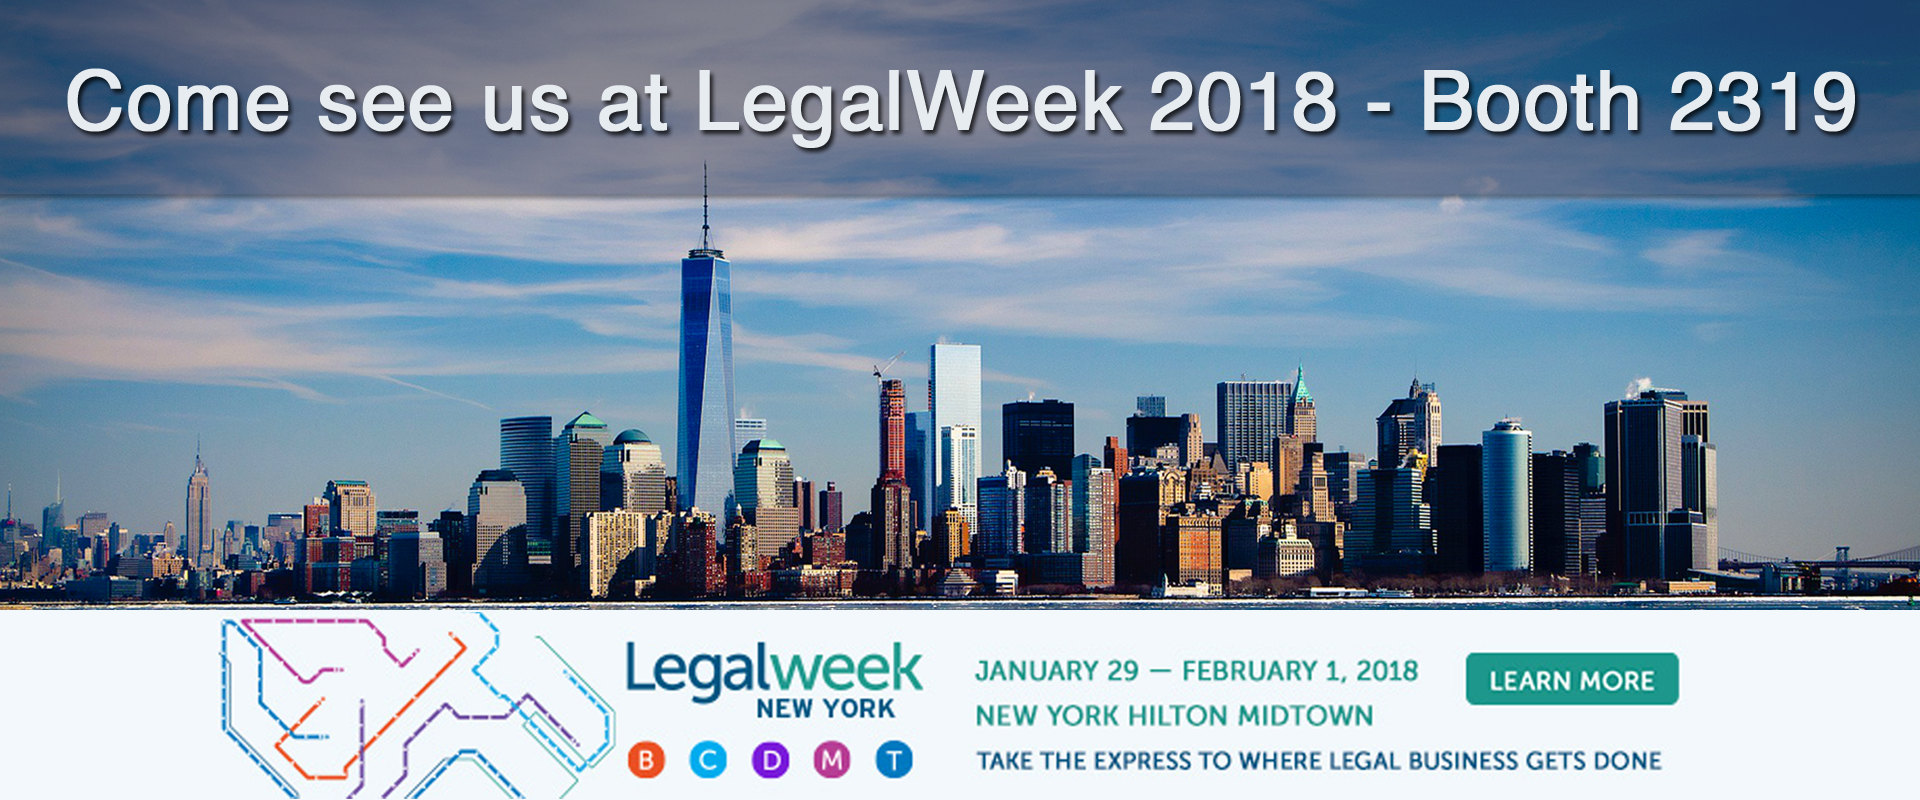 Come see us at LegalWeek NY 2018 - Booth 2319 #Legalweek18 #Legaltech